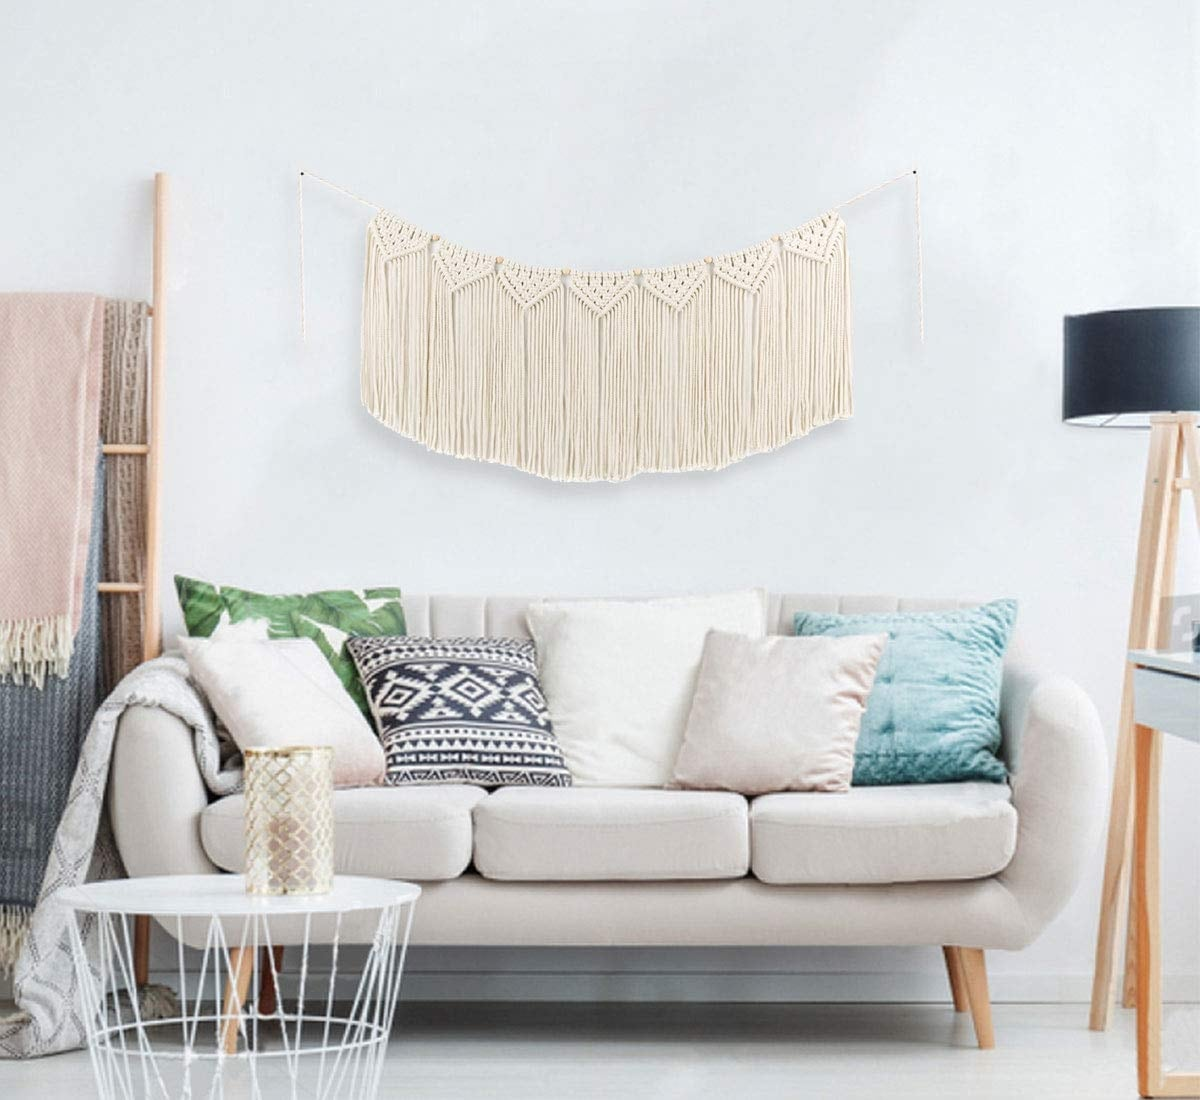 Long wall hanging macrame with a boho interior touch